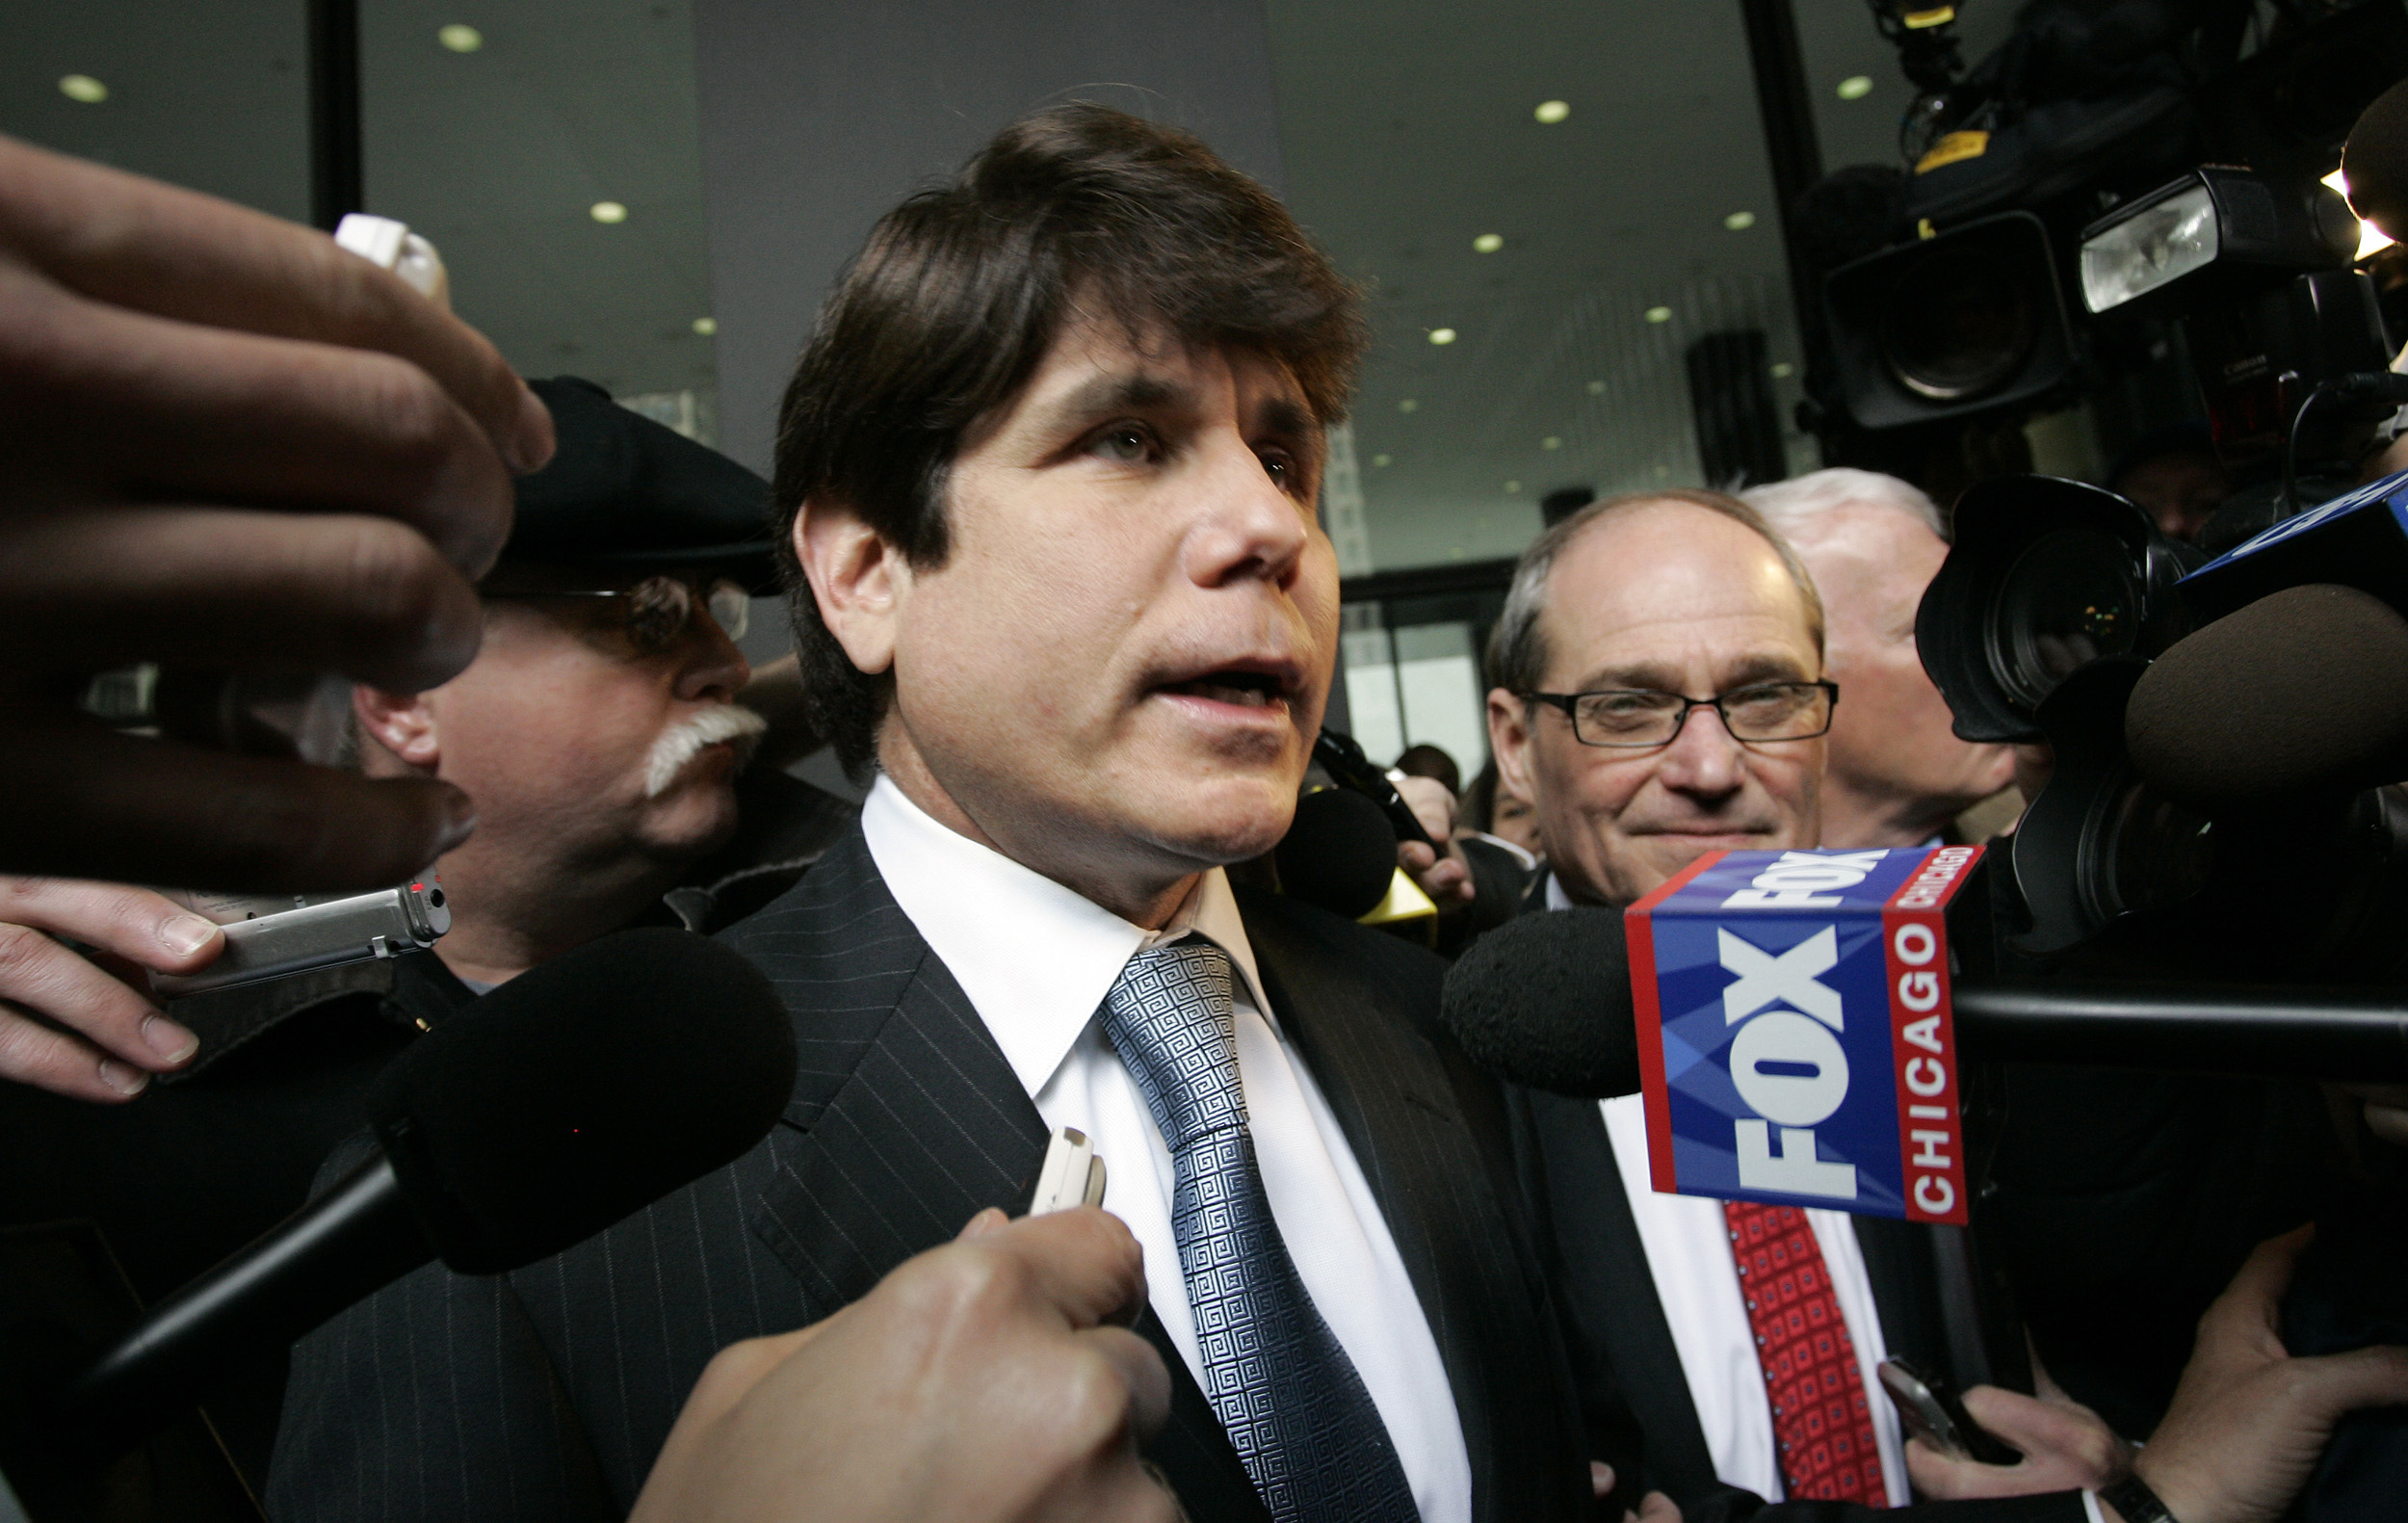 Rod Blagojevich's quote